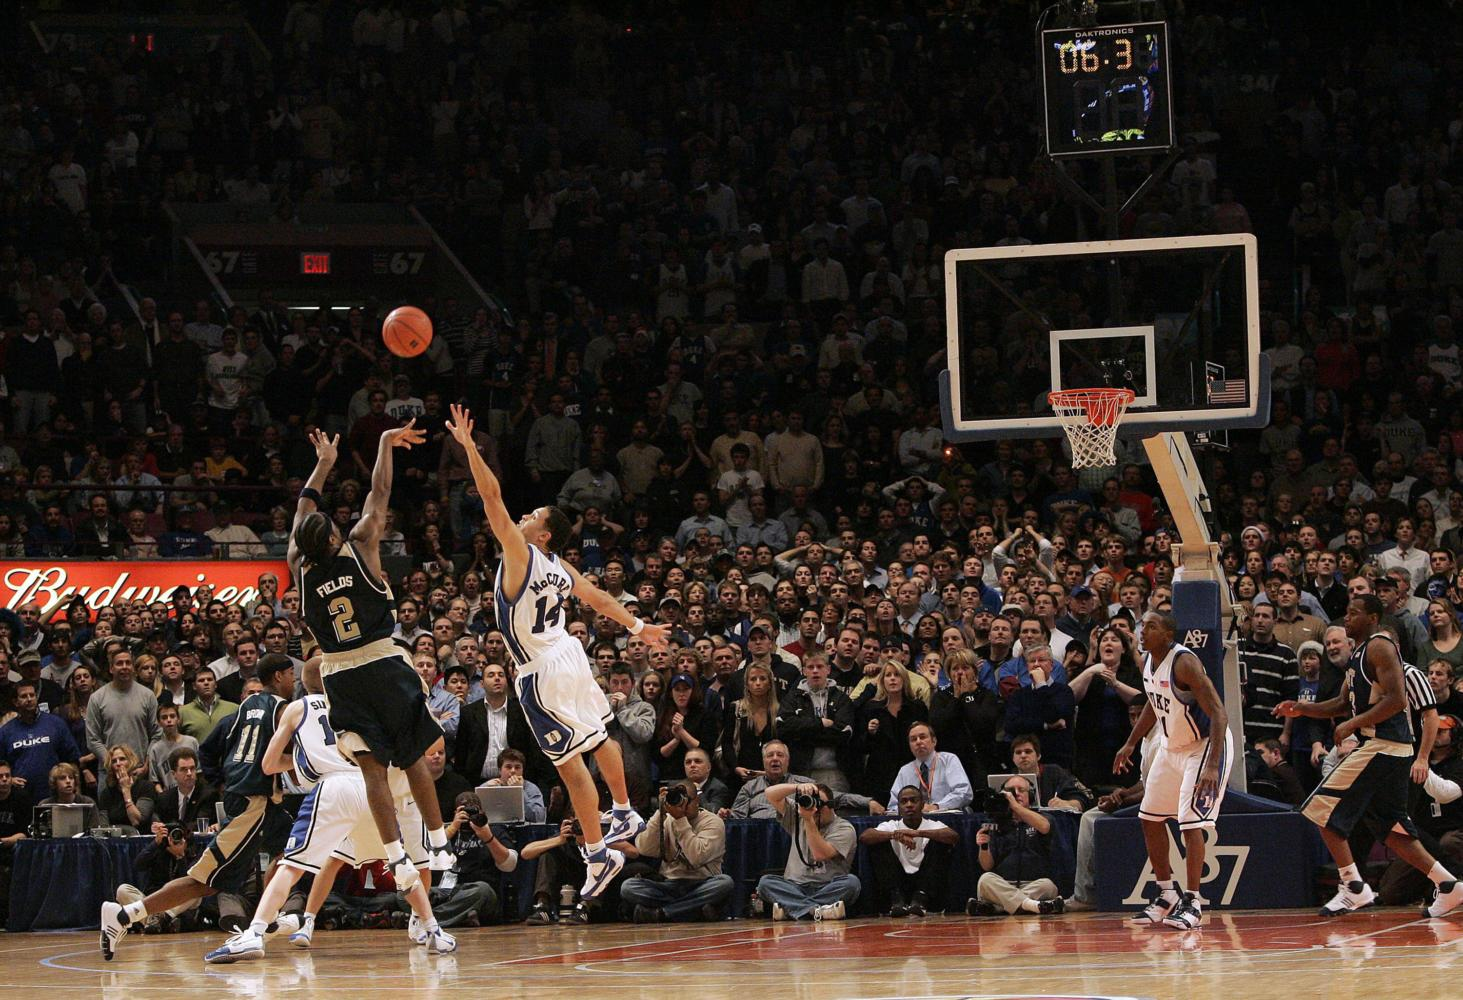 Pitt's Levance Fields (2) shoots the game-winning three with six seconds remaining in overtime. Pitt defeated Duke, 65-64, at Madison Square Garden in New York City, Thursday, December 20, 2007. (Ted Richardson/Raleigh News & Observer/MCT)